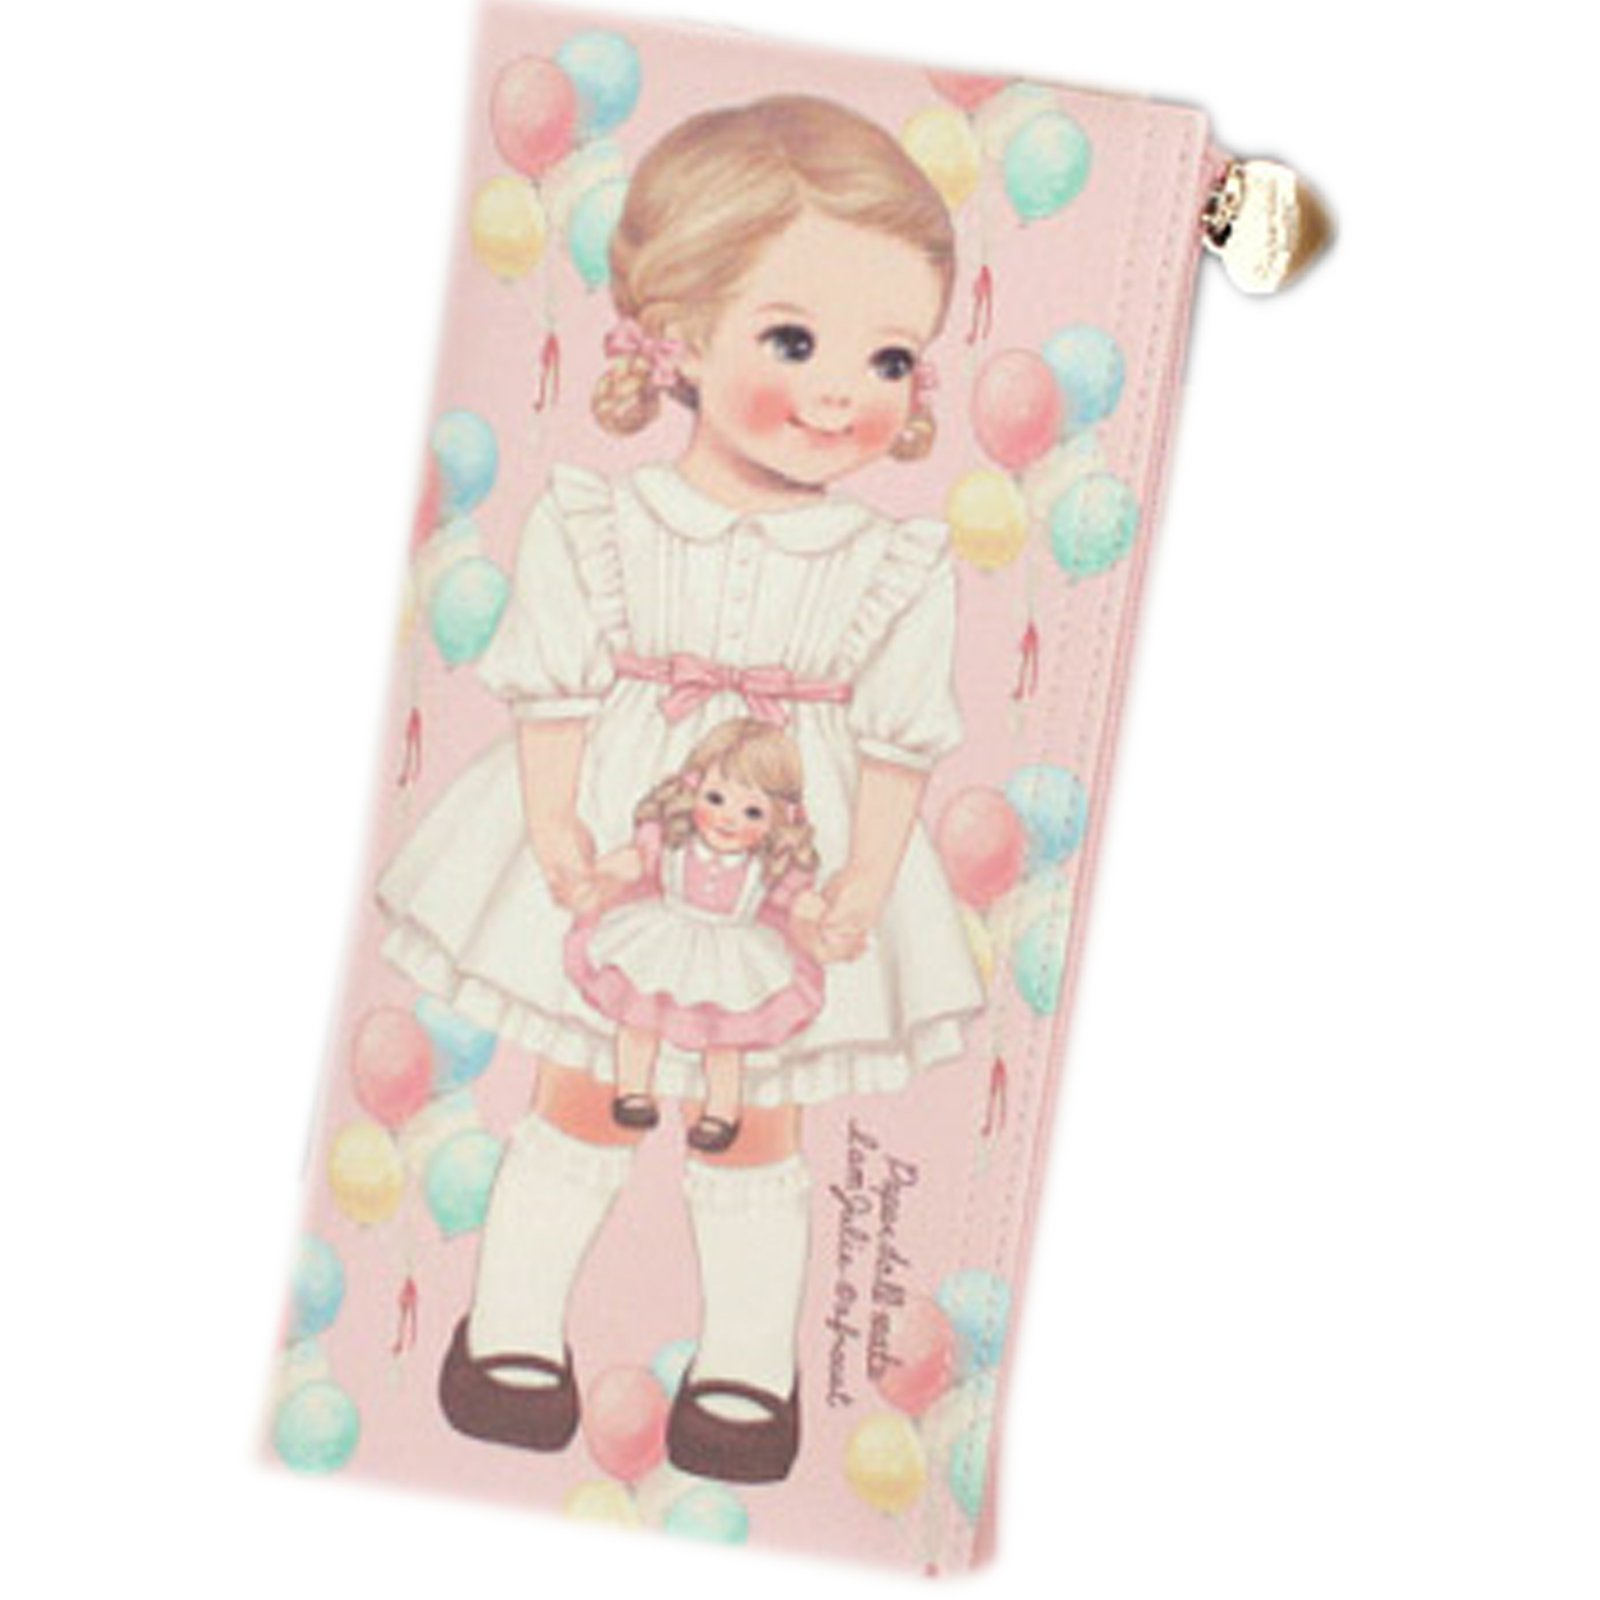 paperdollmate pencase ver011_toy Julie by paper doll mate (Image #2)